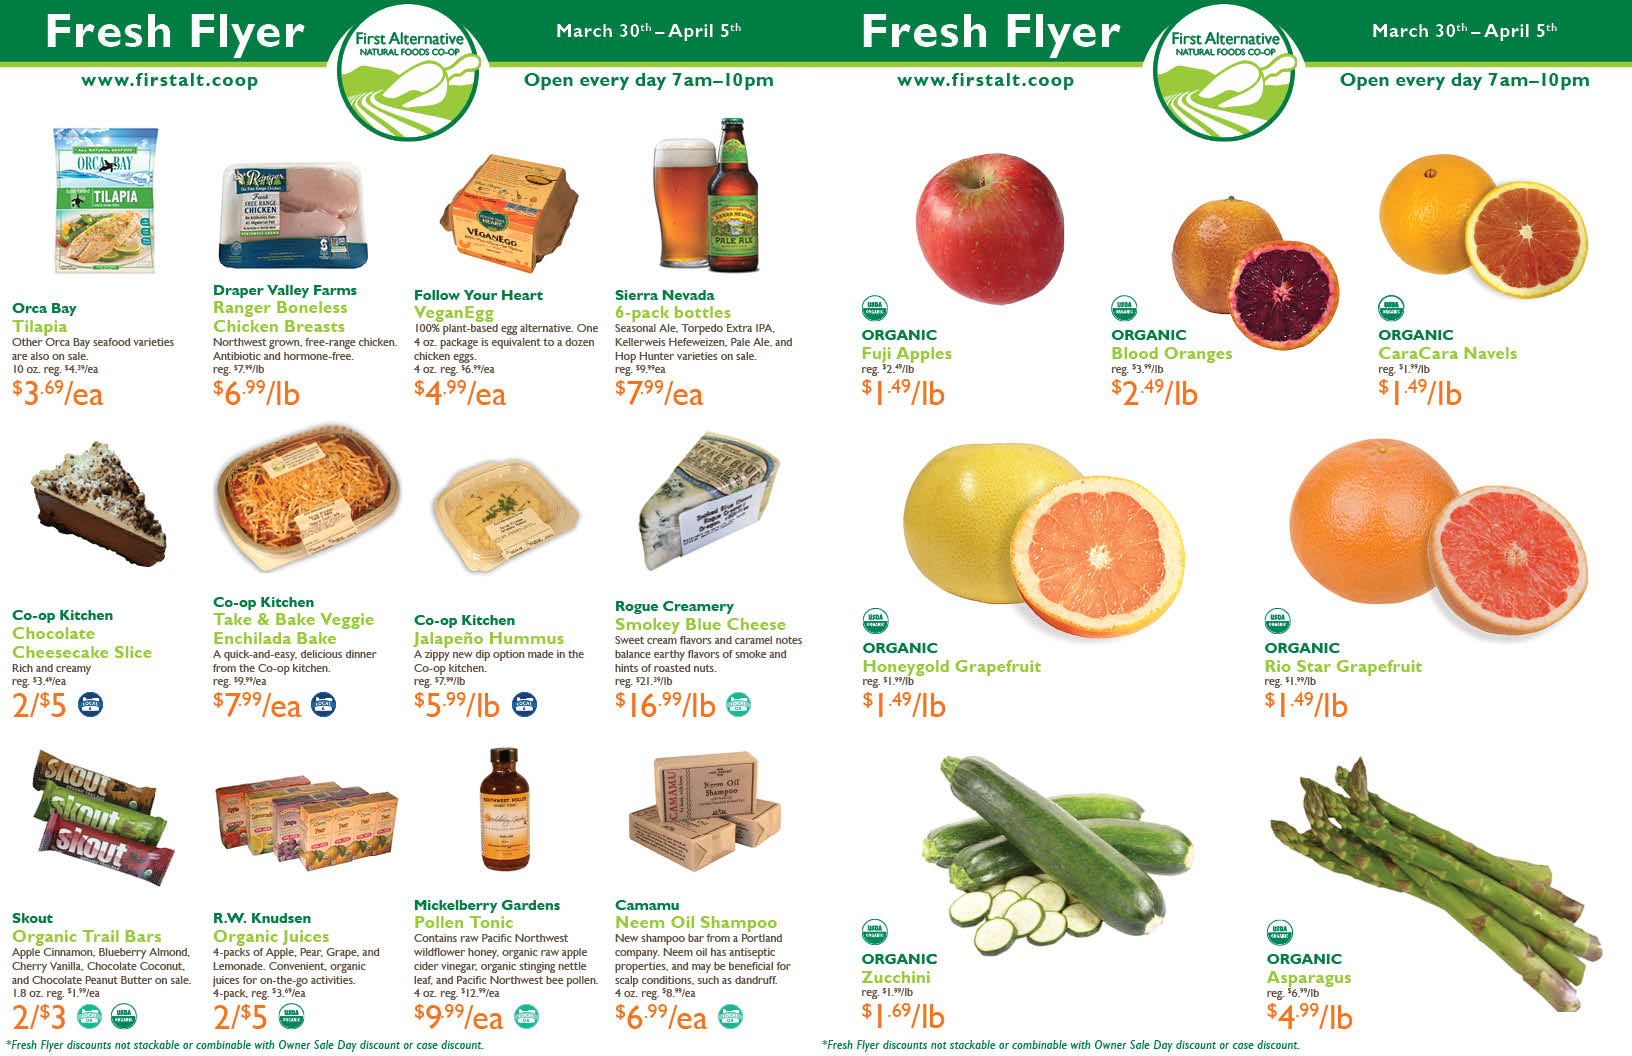 First Alternative Co-op Fresh Flyer March 30 - April 5